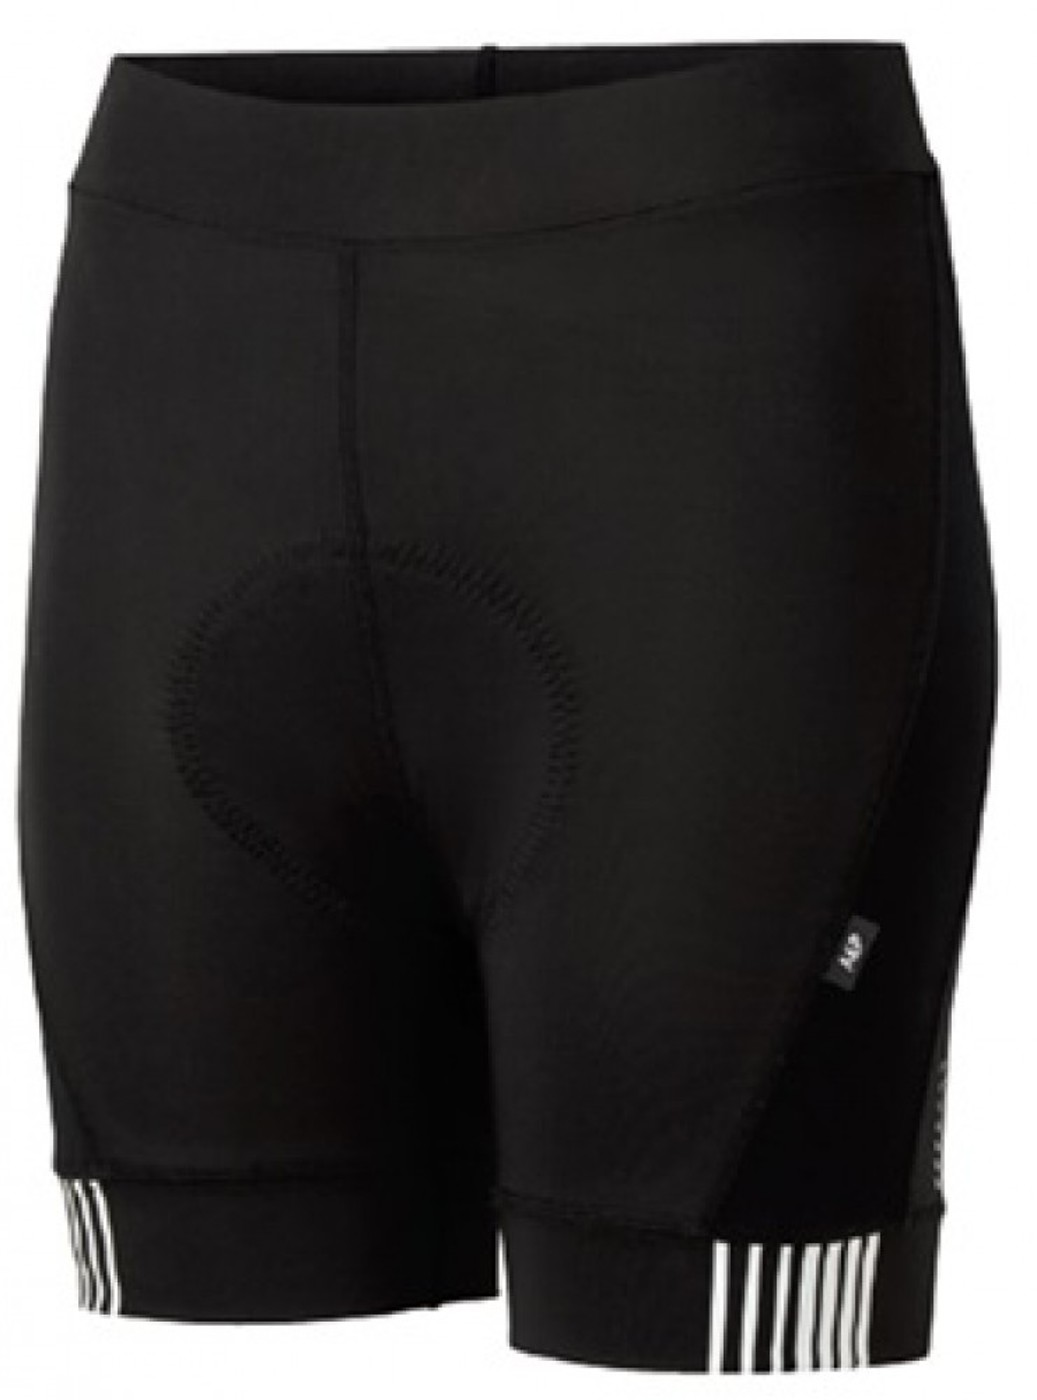 DARE2B AEP Propell Short - Damen